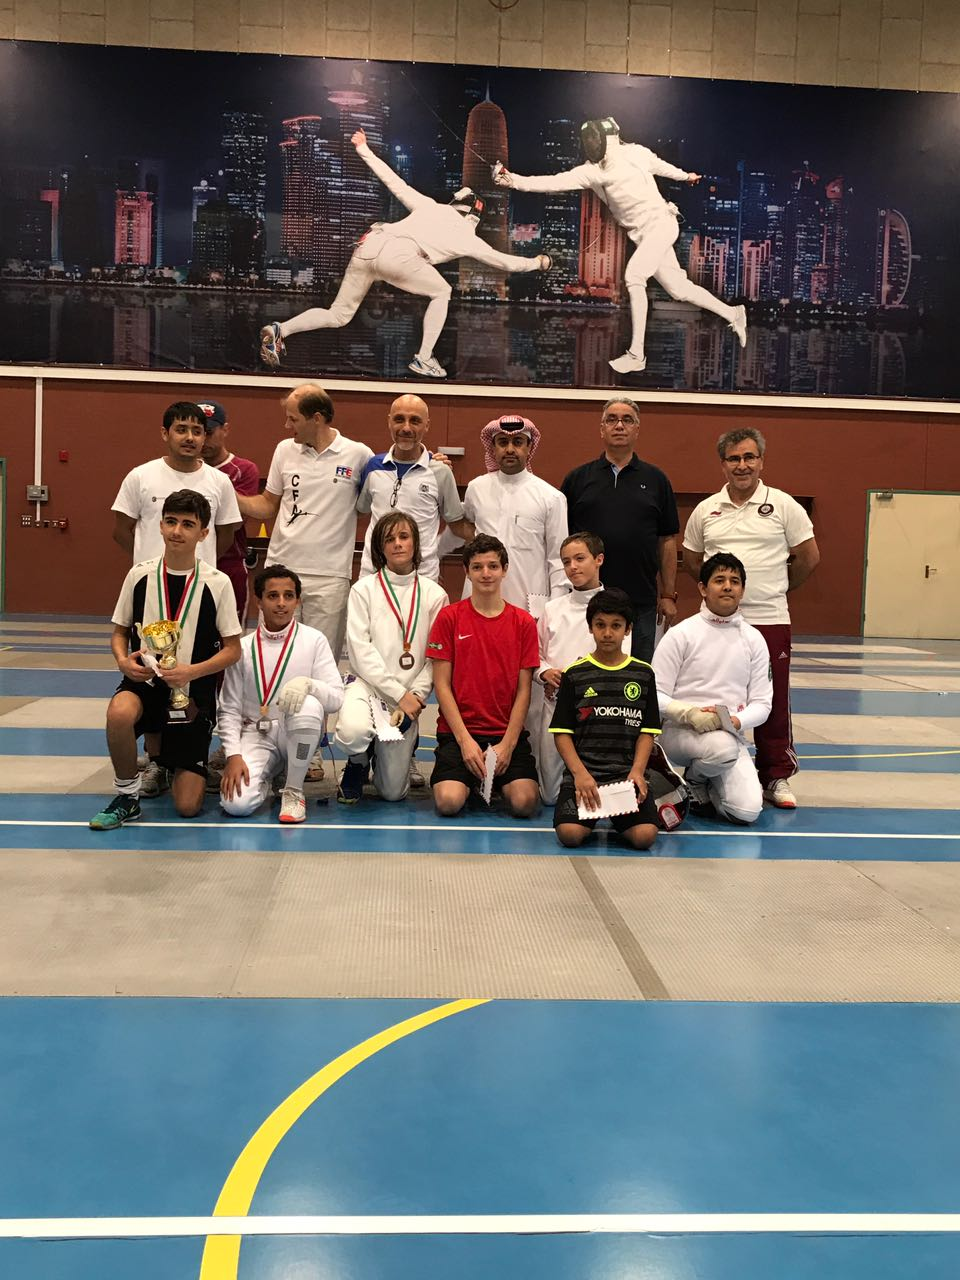 clement fencing acad